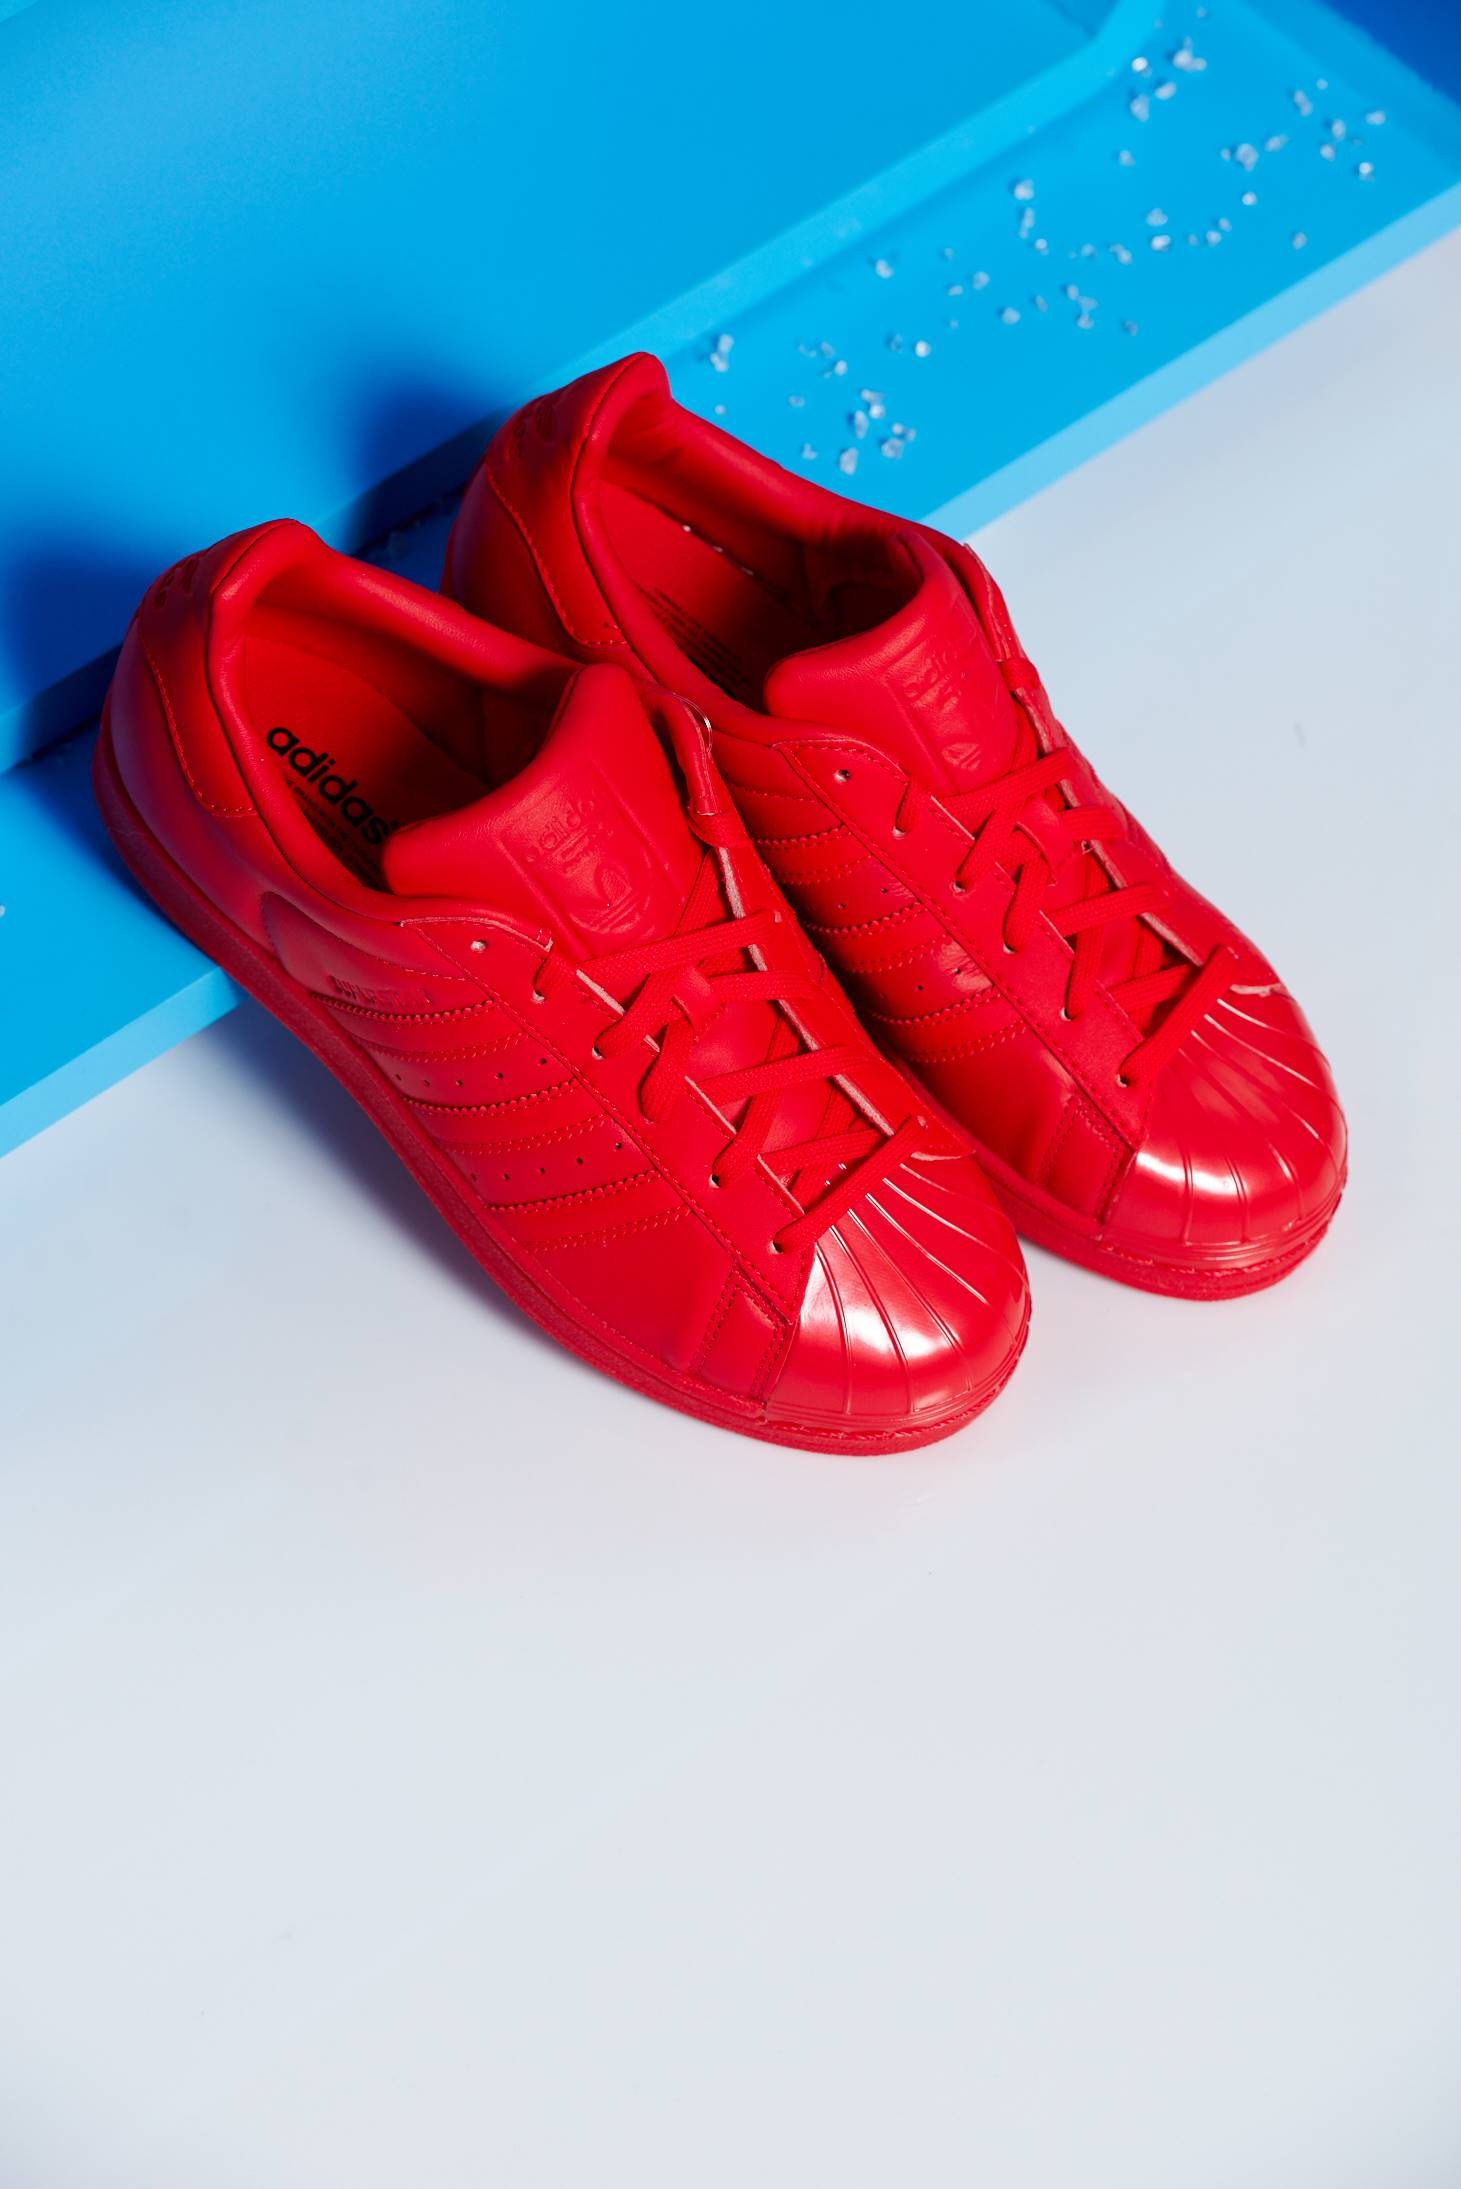 premium selection 780d8 364d7 Adidas red superstar 80s originals sneakers with lace